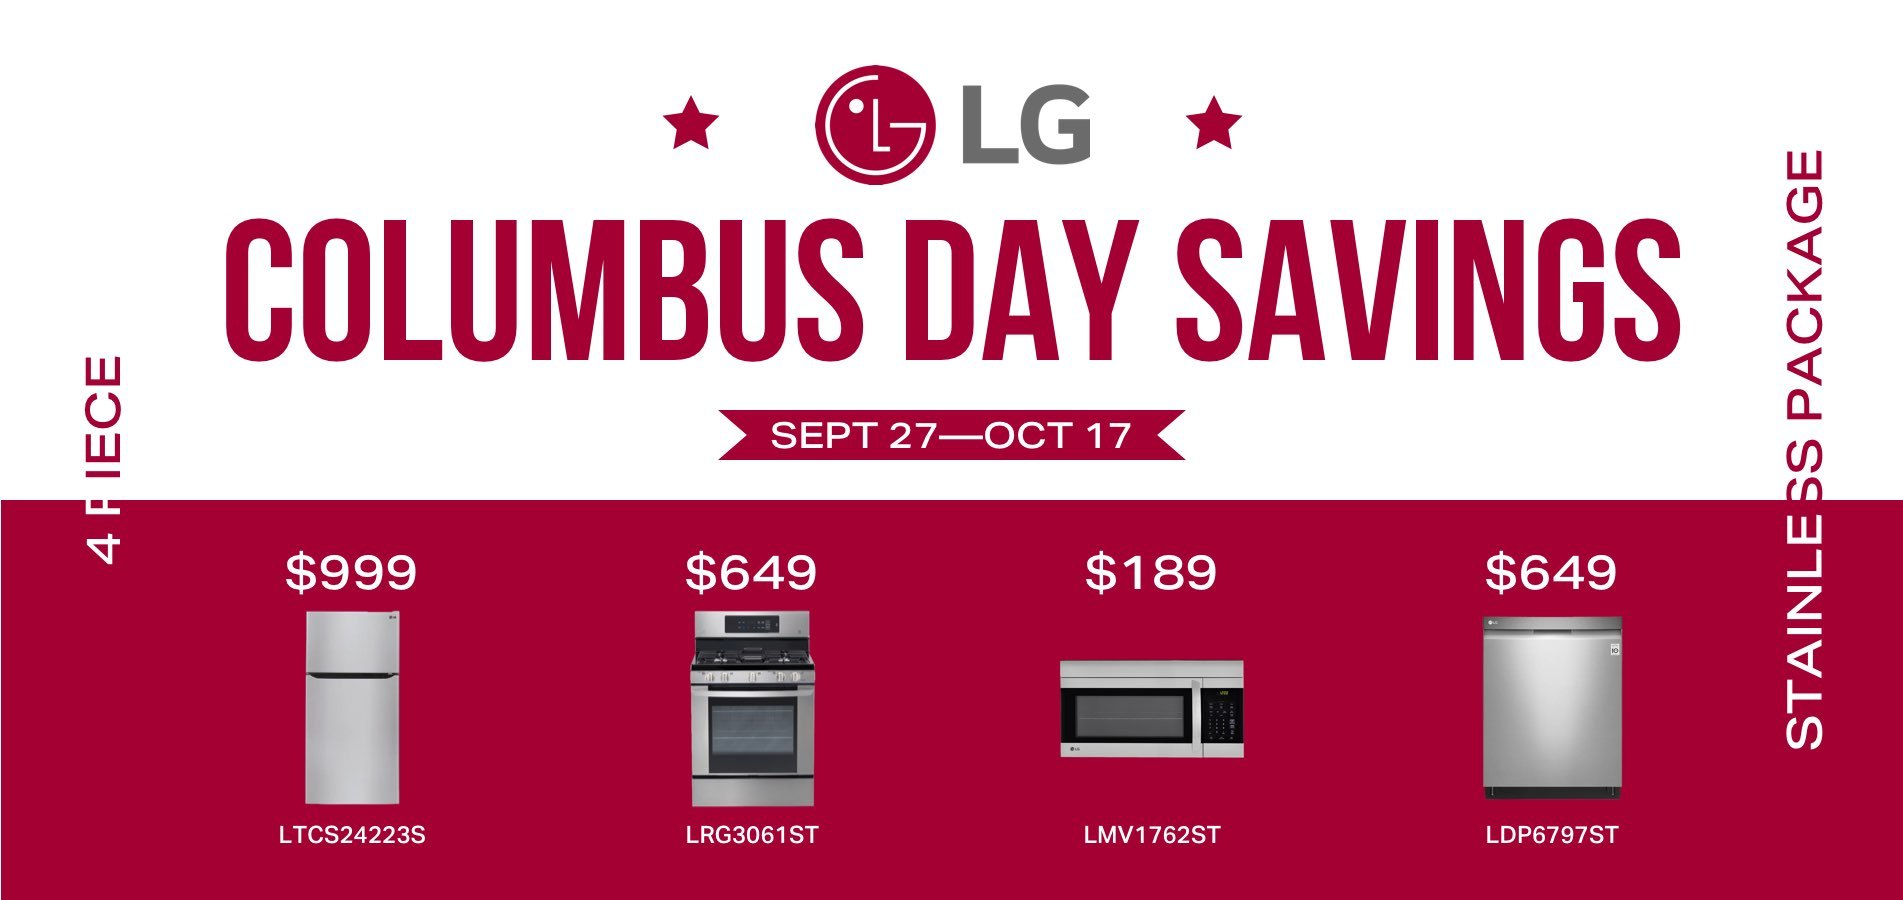 LG Columbus Day Savings